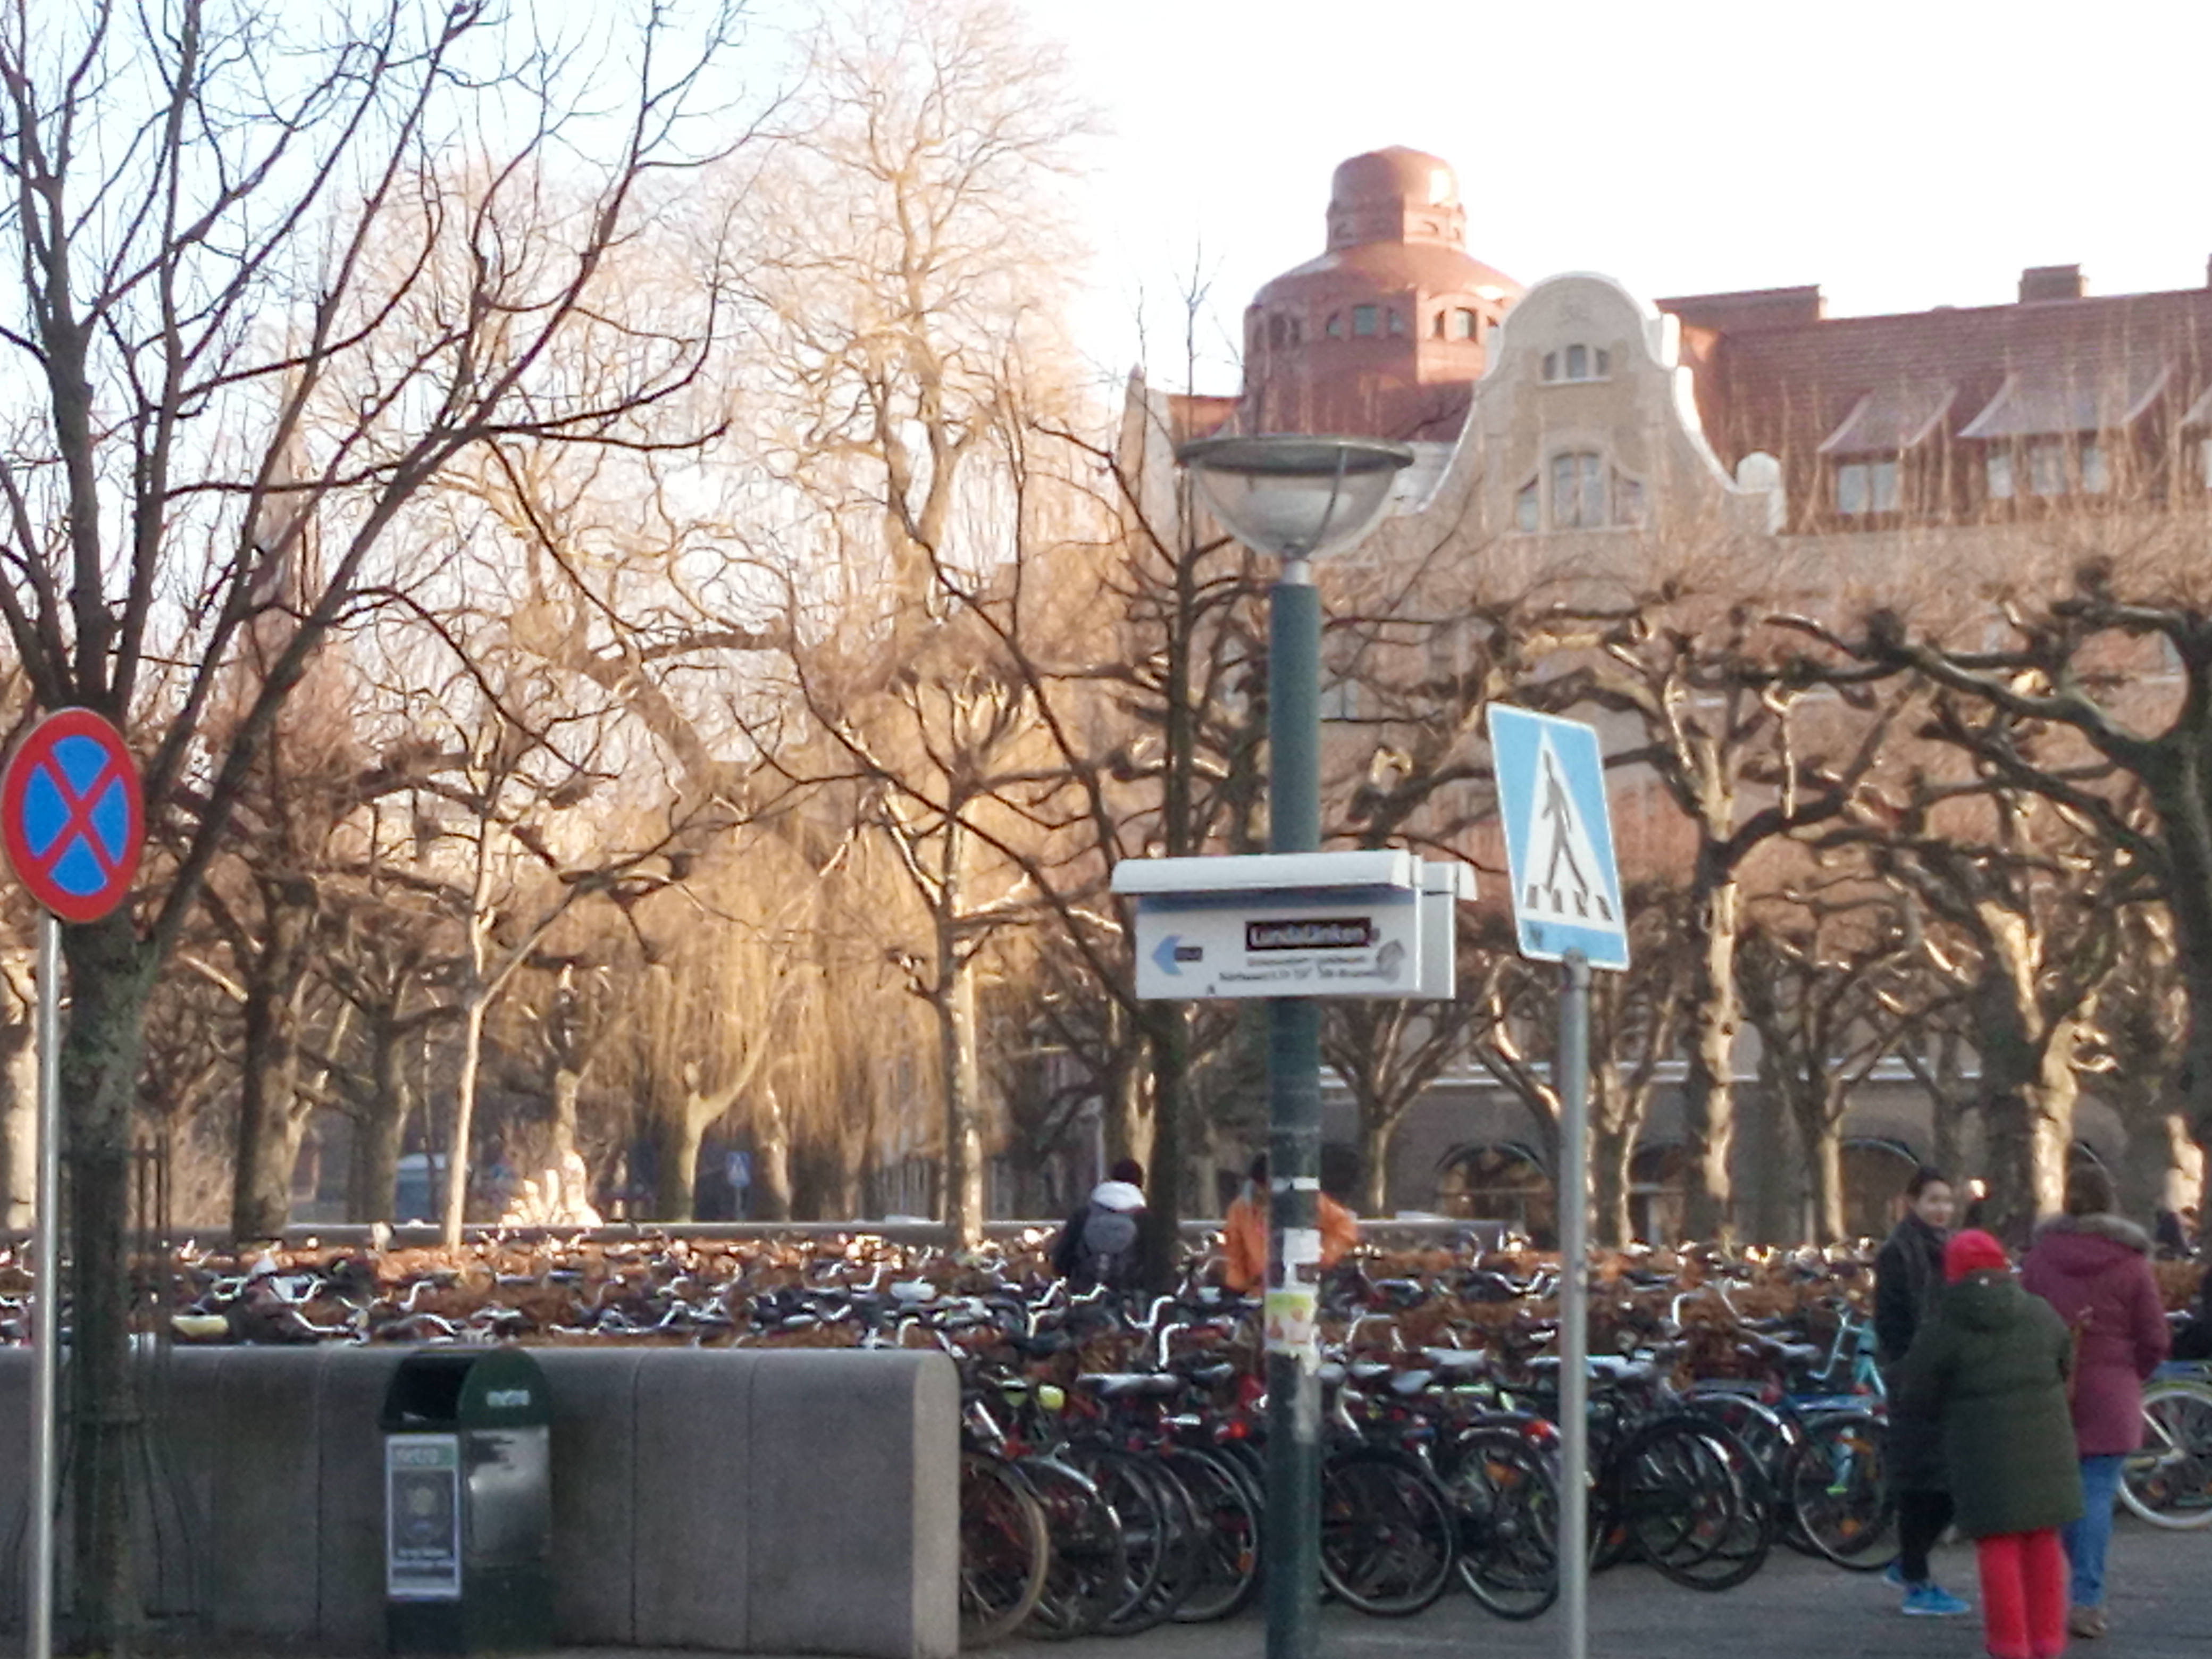 Downtown Lund is centered around a large square half of which is a public market and the other half is all bike parking!